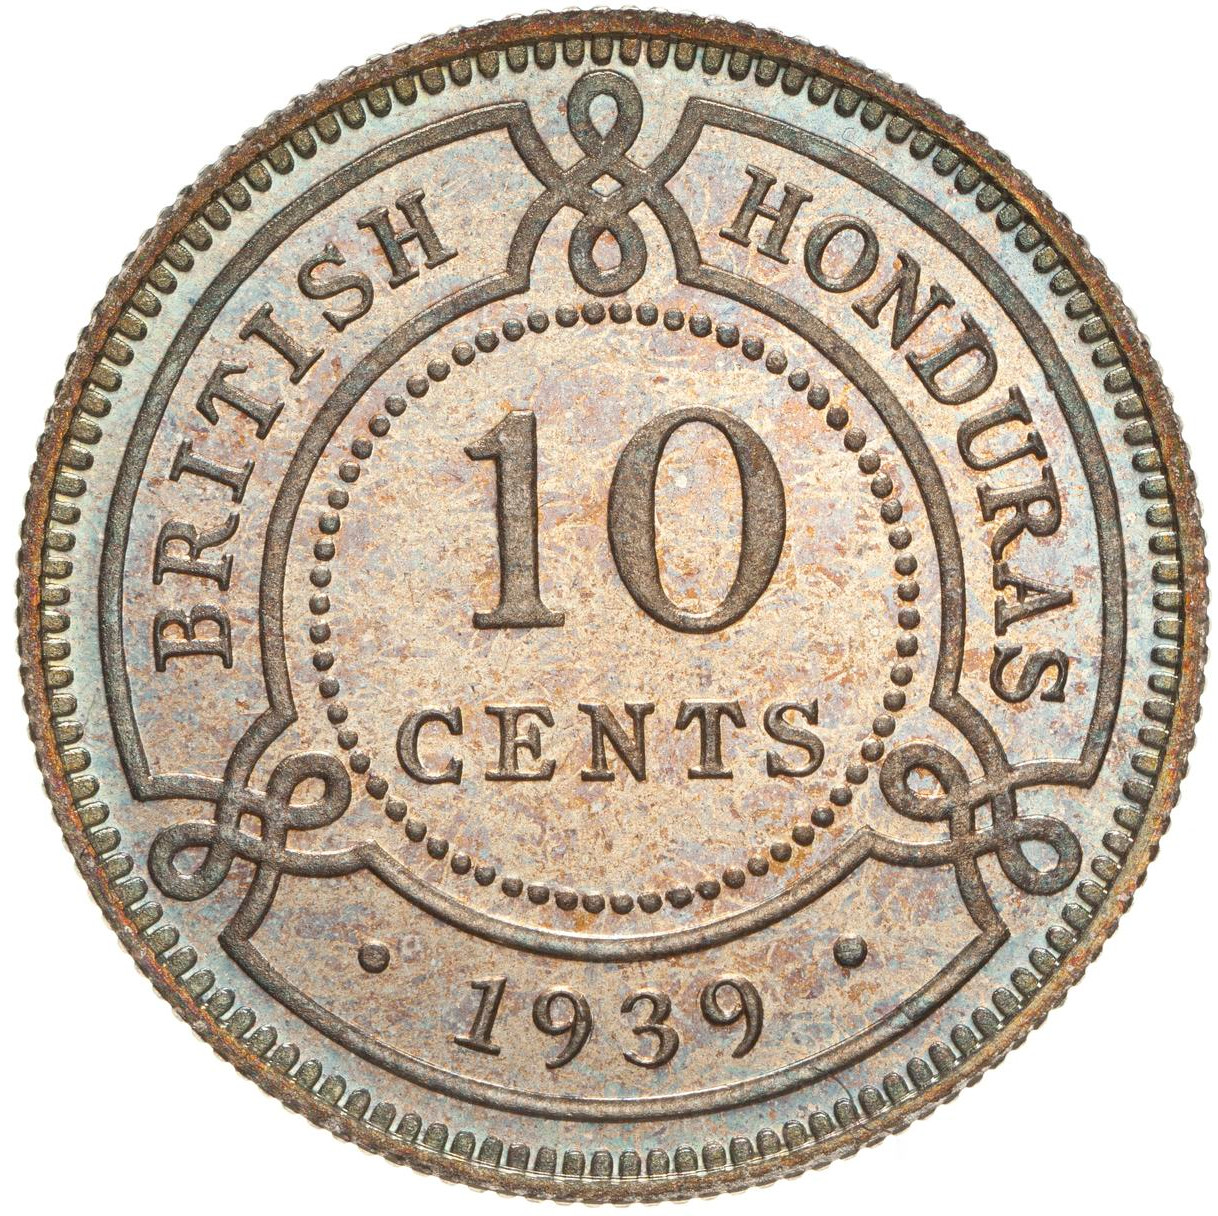 Ten Cents 1939: Photo Proof Coin - 10 Cents, British Honduras (Belize), 1939